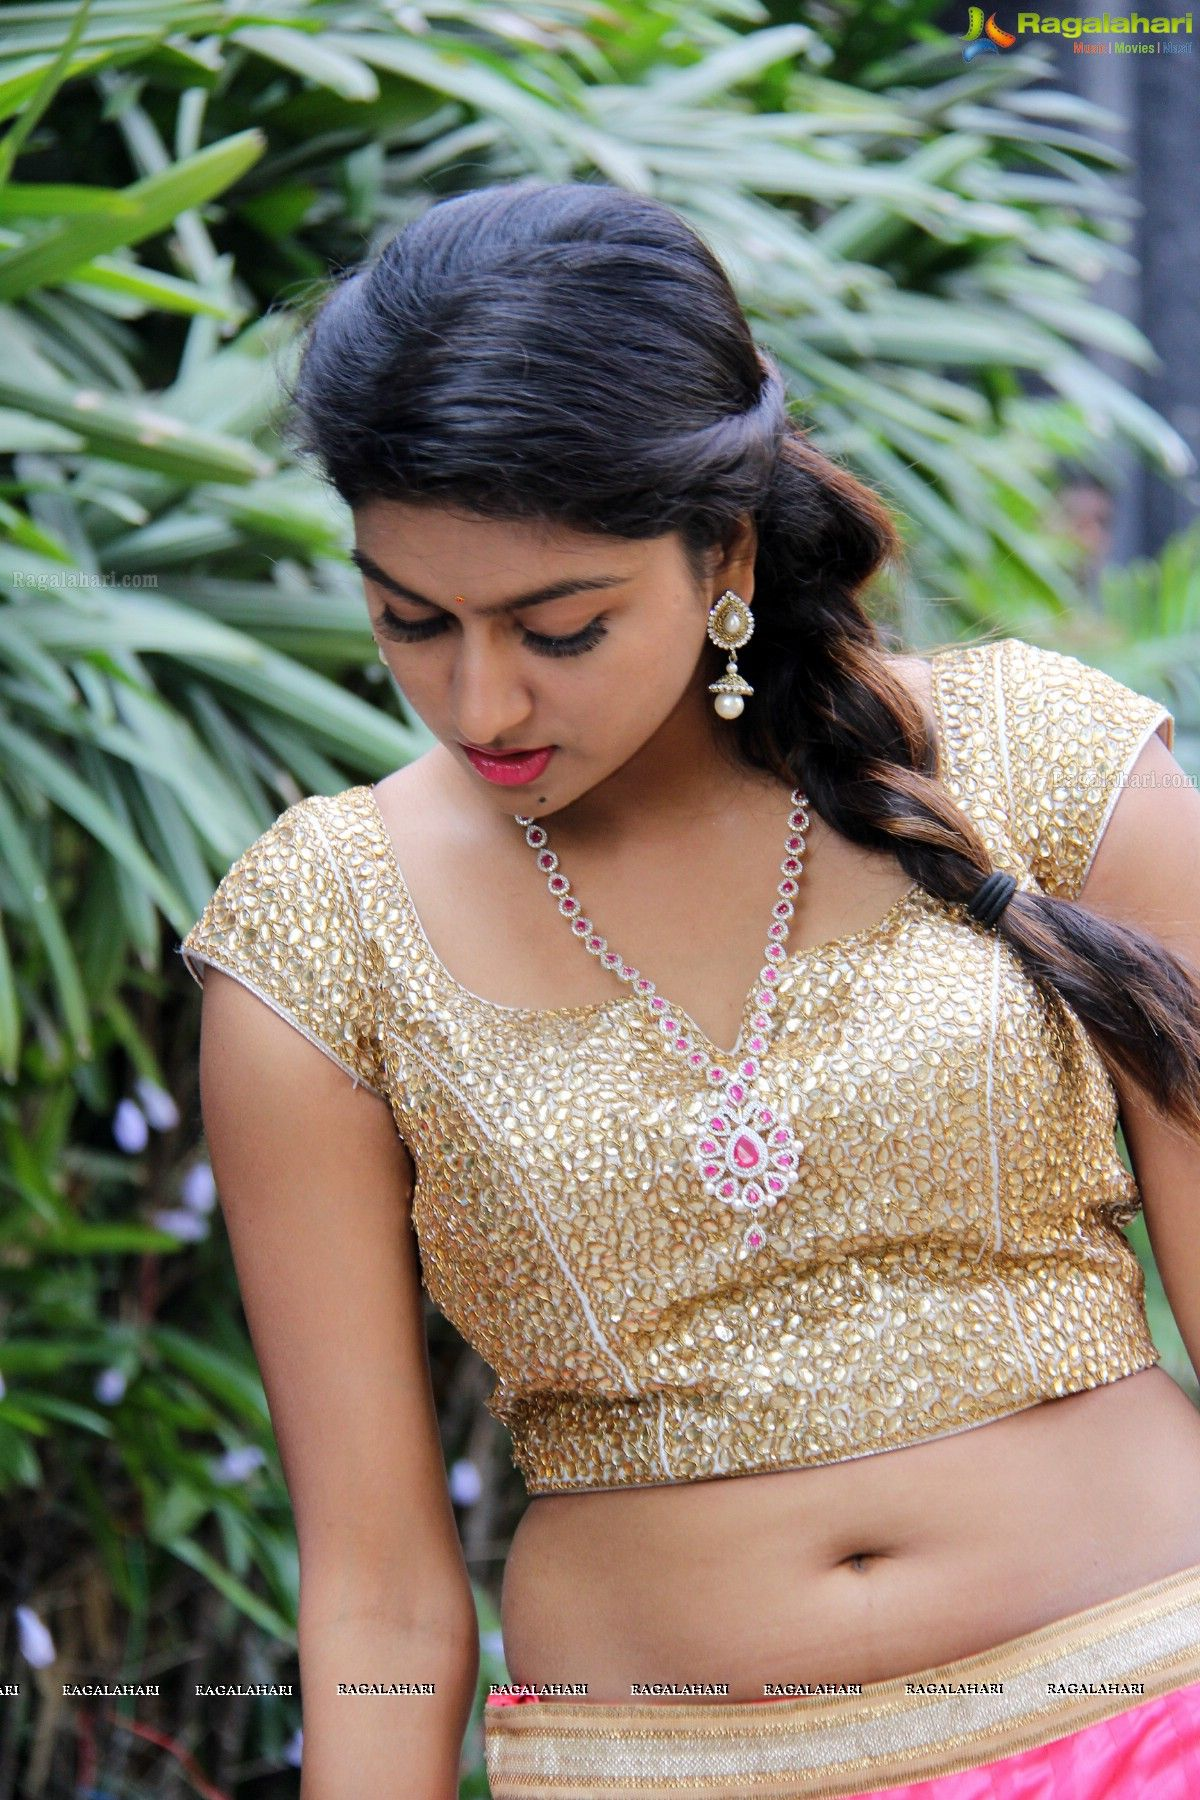 sai akshatha image 78 | tollywood heroines gallery,images, photos